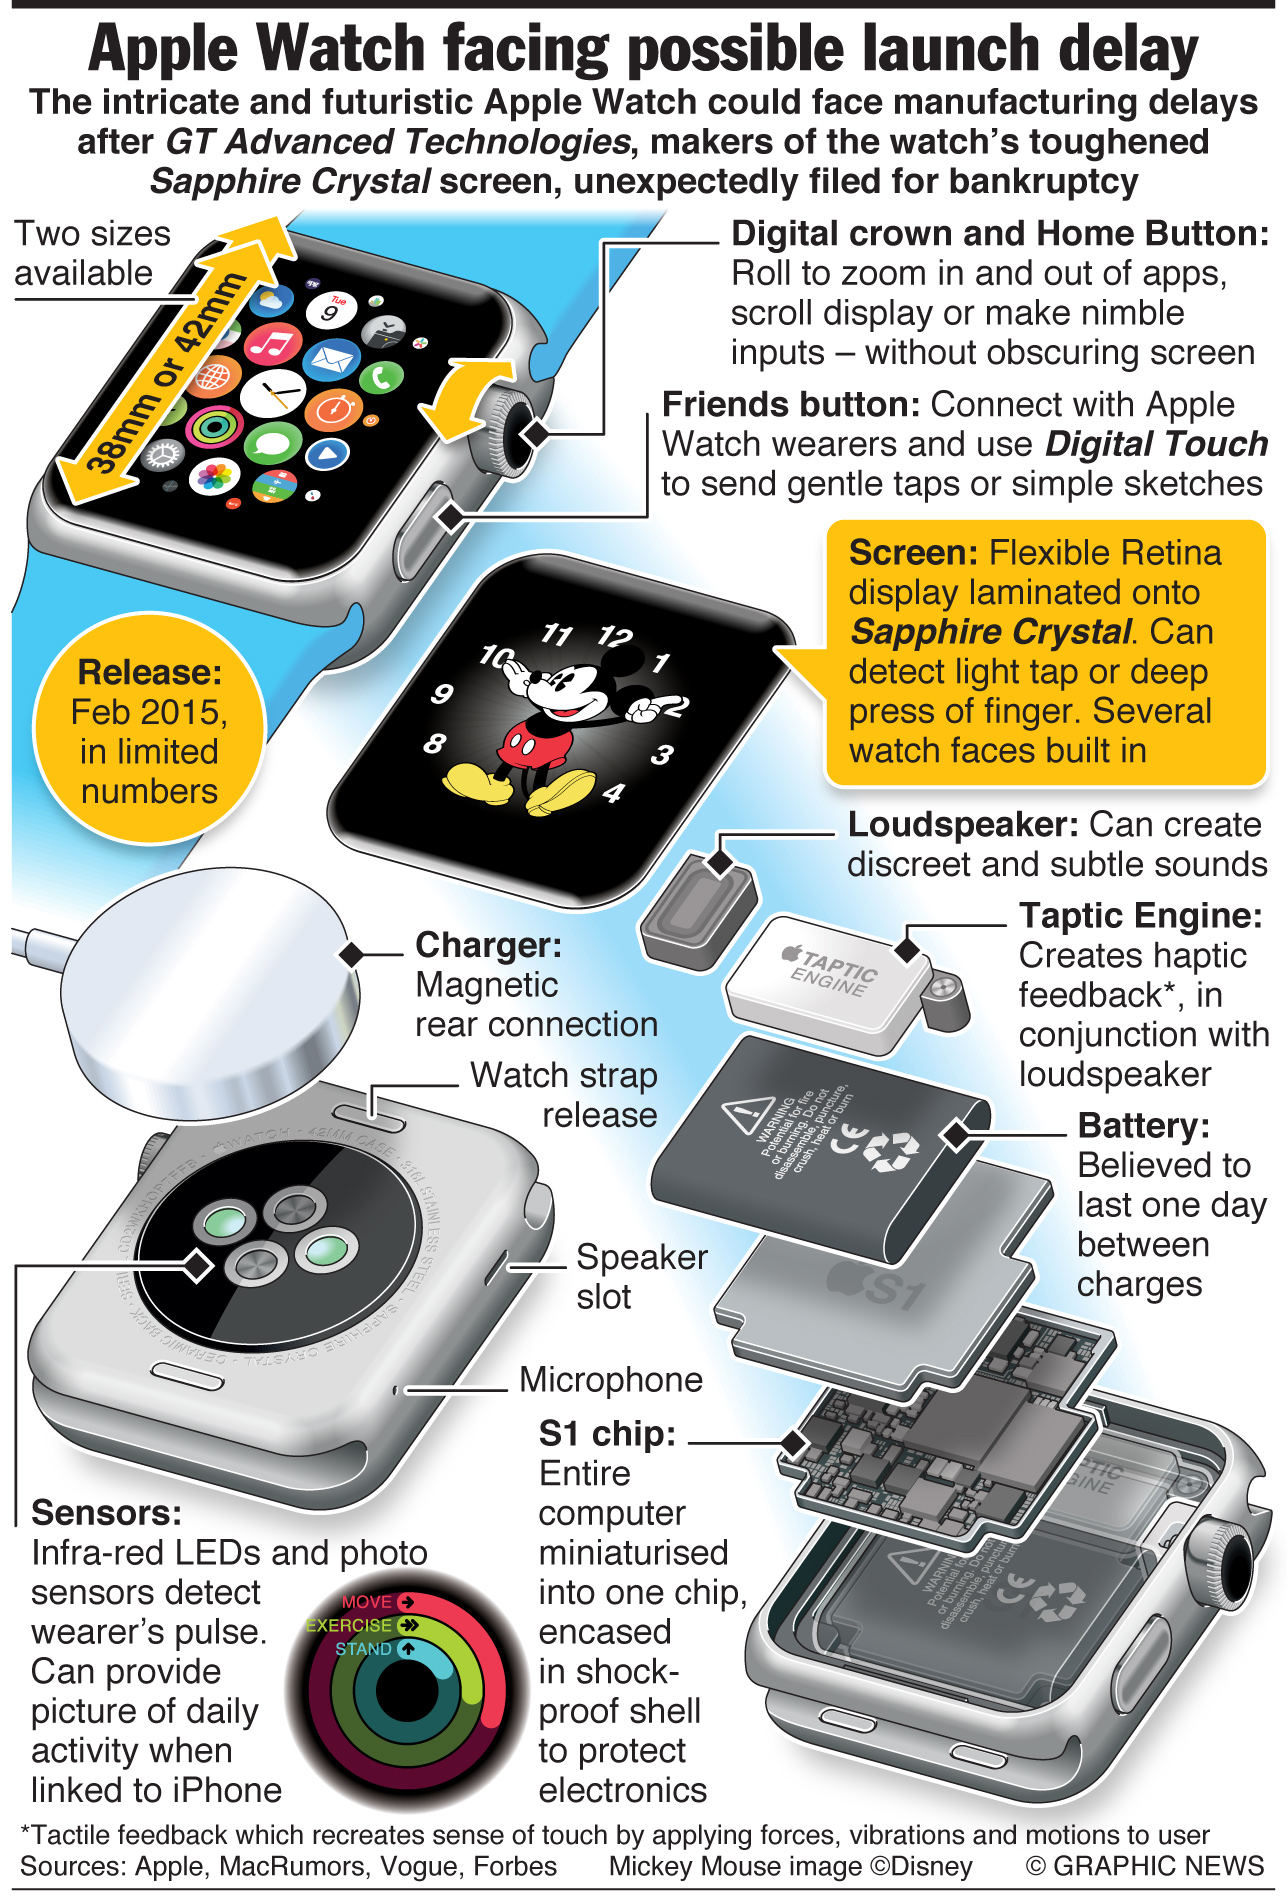 Applewatch Launch May Be Delayed Manufacturing Issues